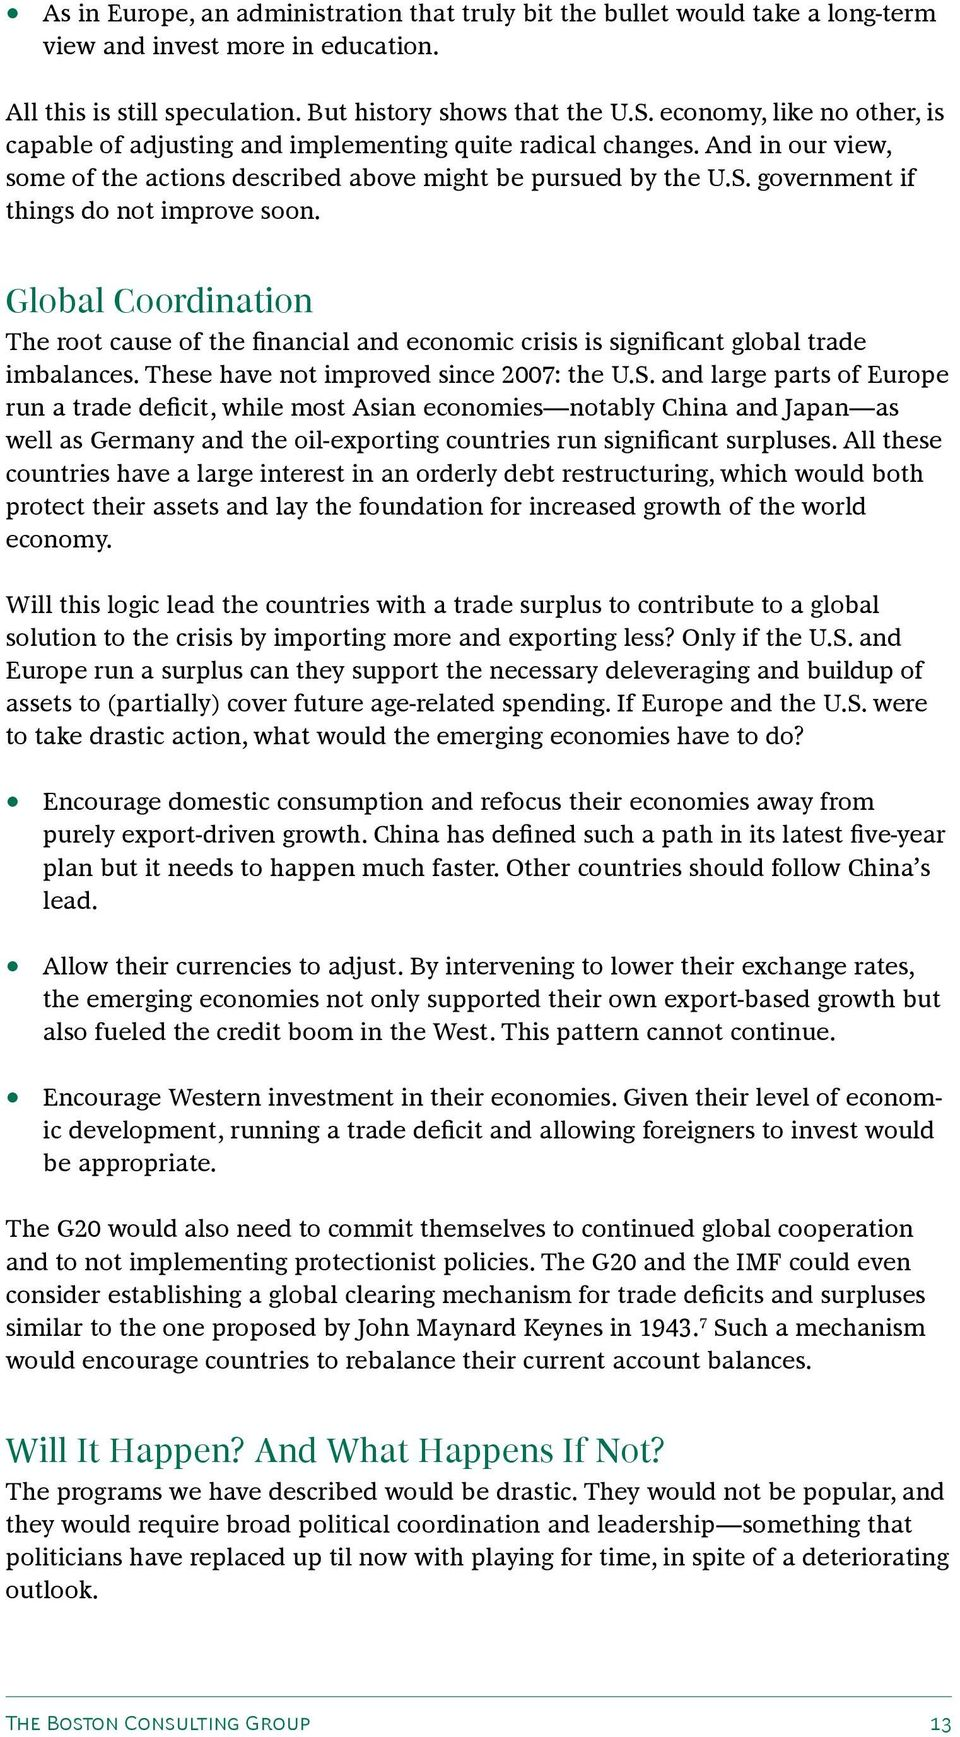 government if things do not improve soon. Global Coordination The root cause of the financial and economic crisis is significant global trade imbalances. These have not improved since 2007: the U.S.